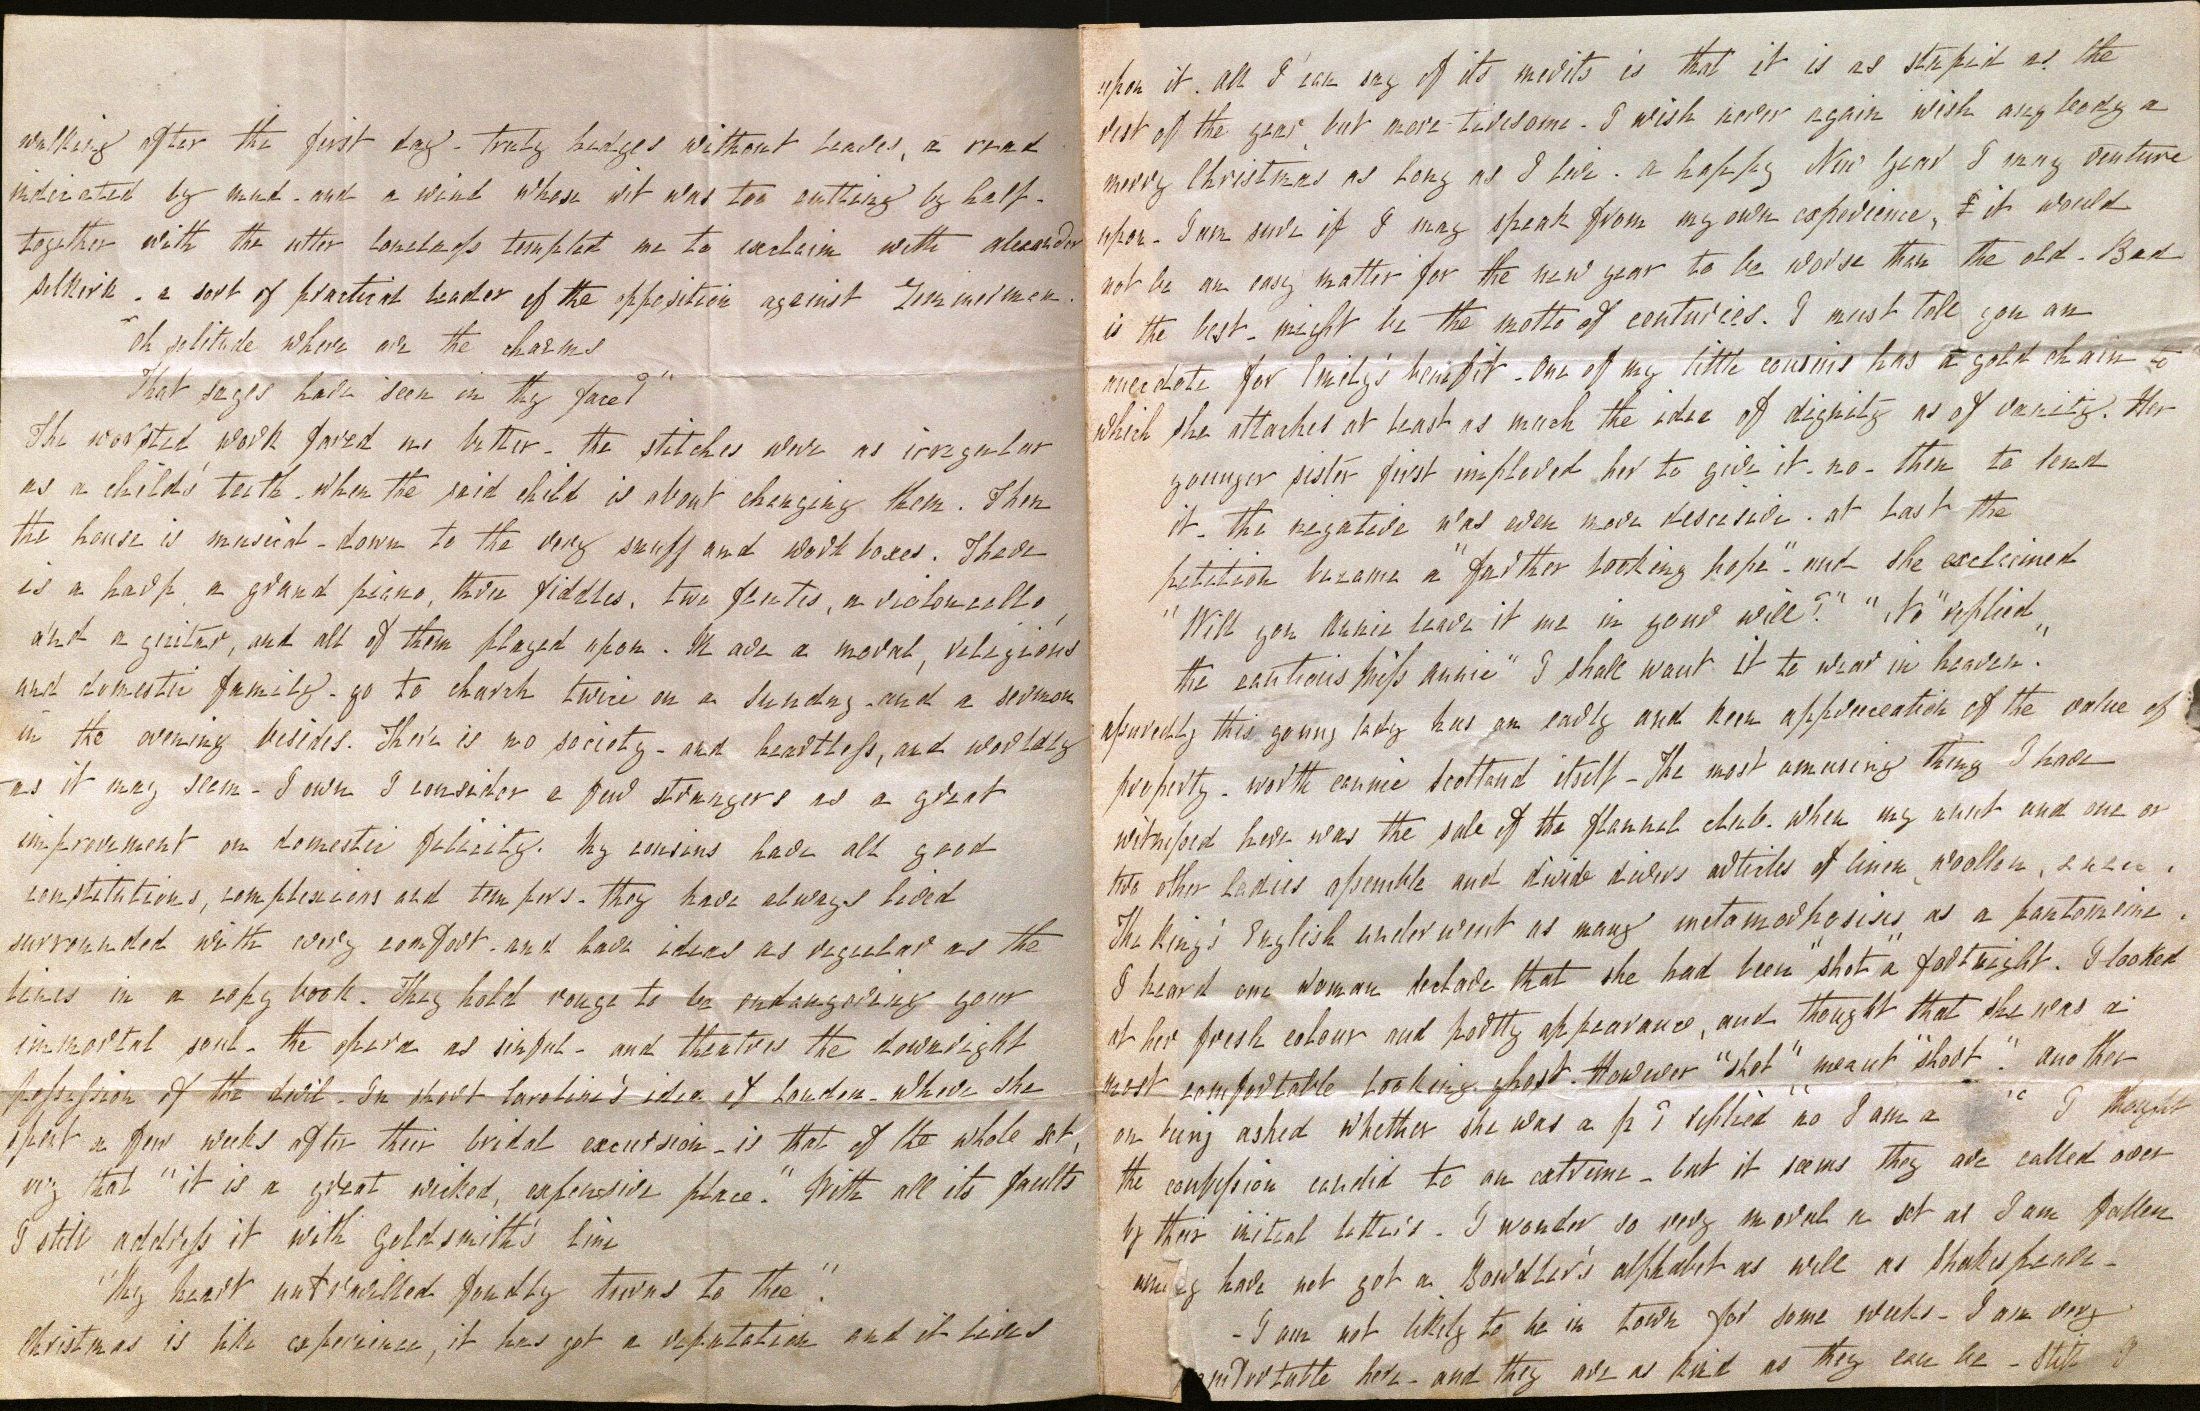 Image of Letter from L. E. L. to Mrs. Bulwer, pages 2-3.